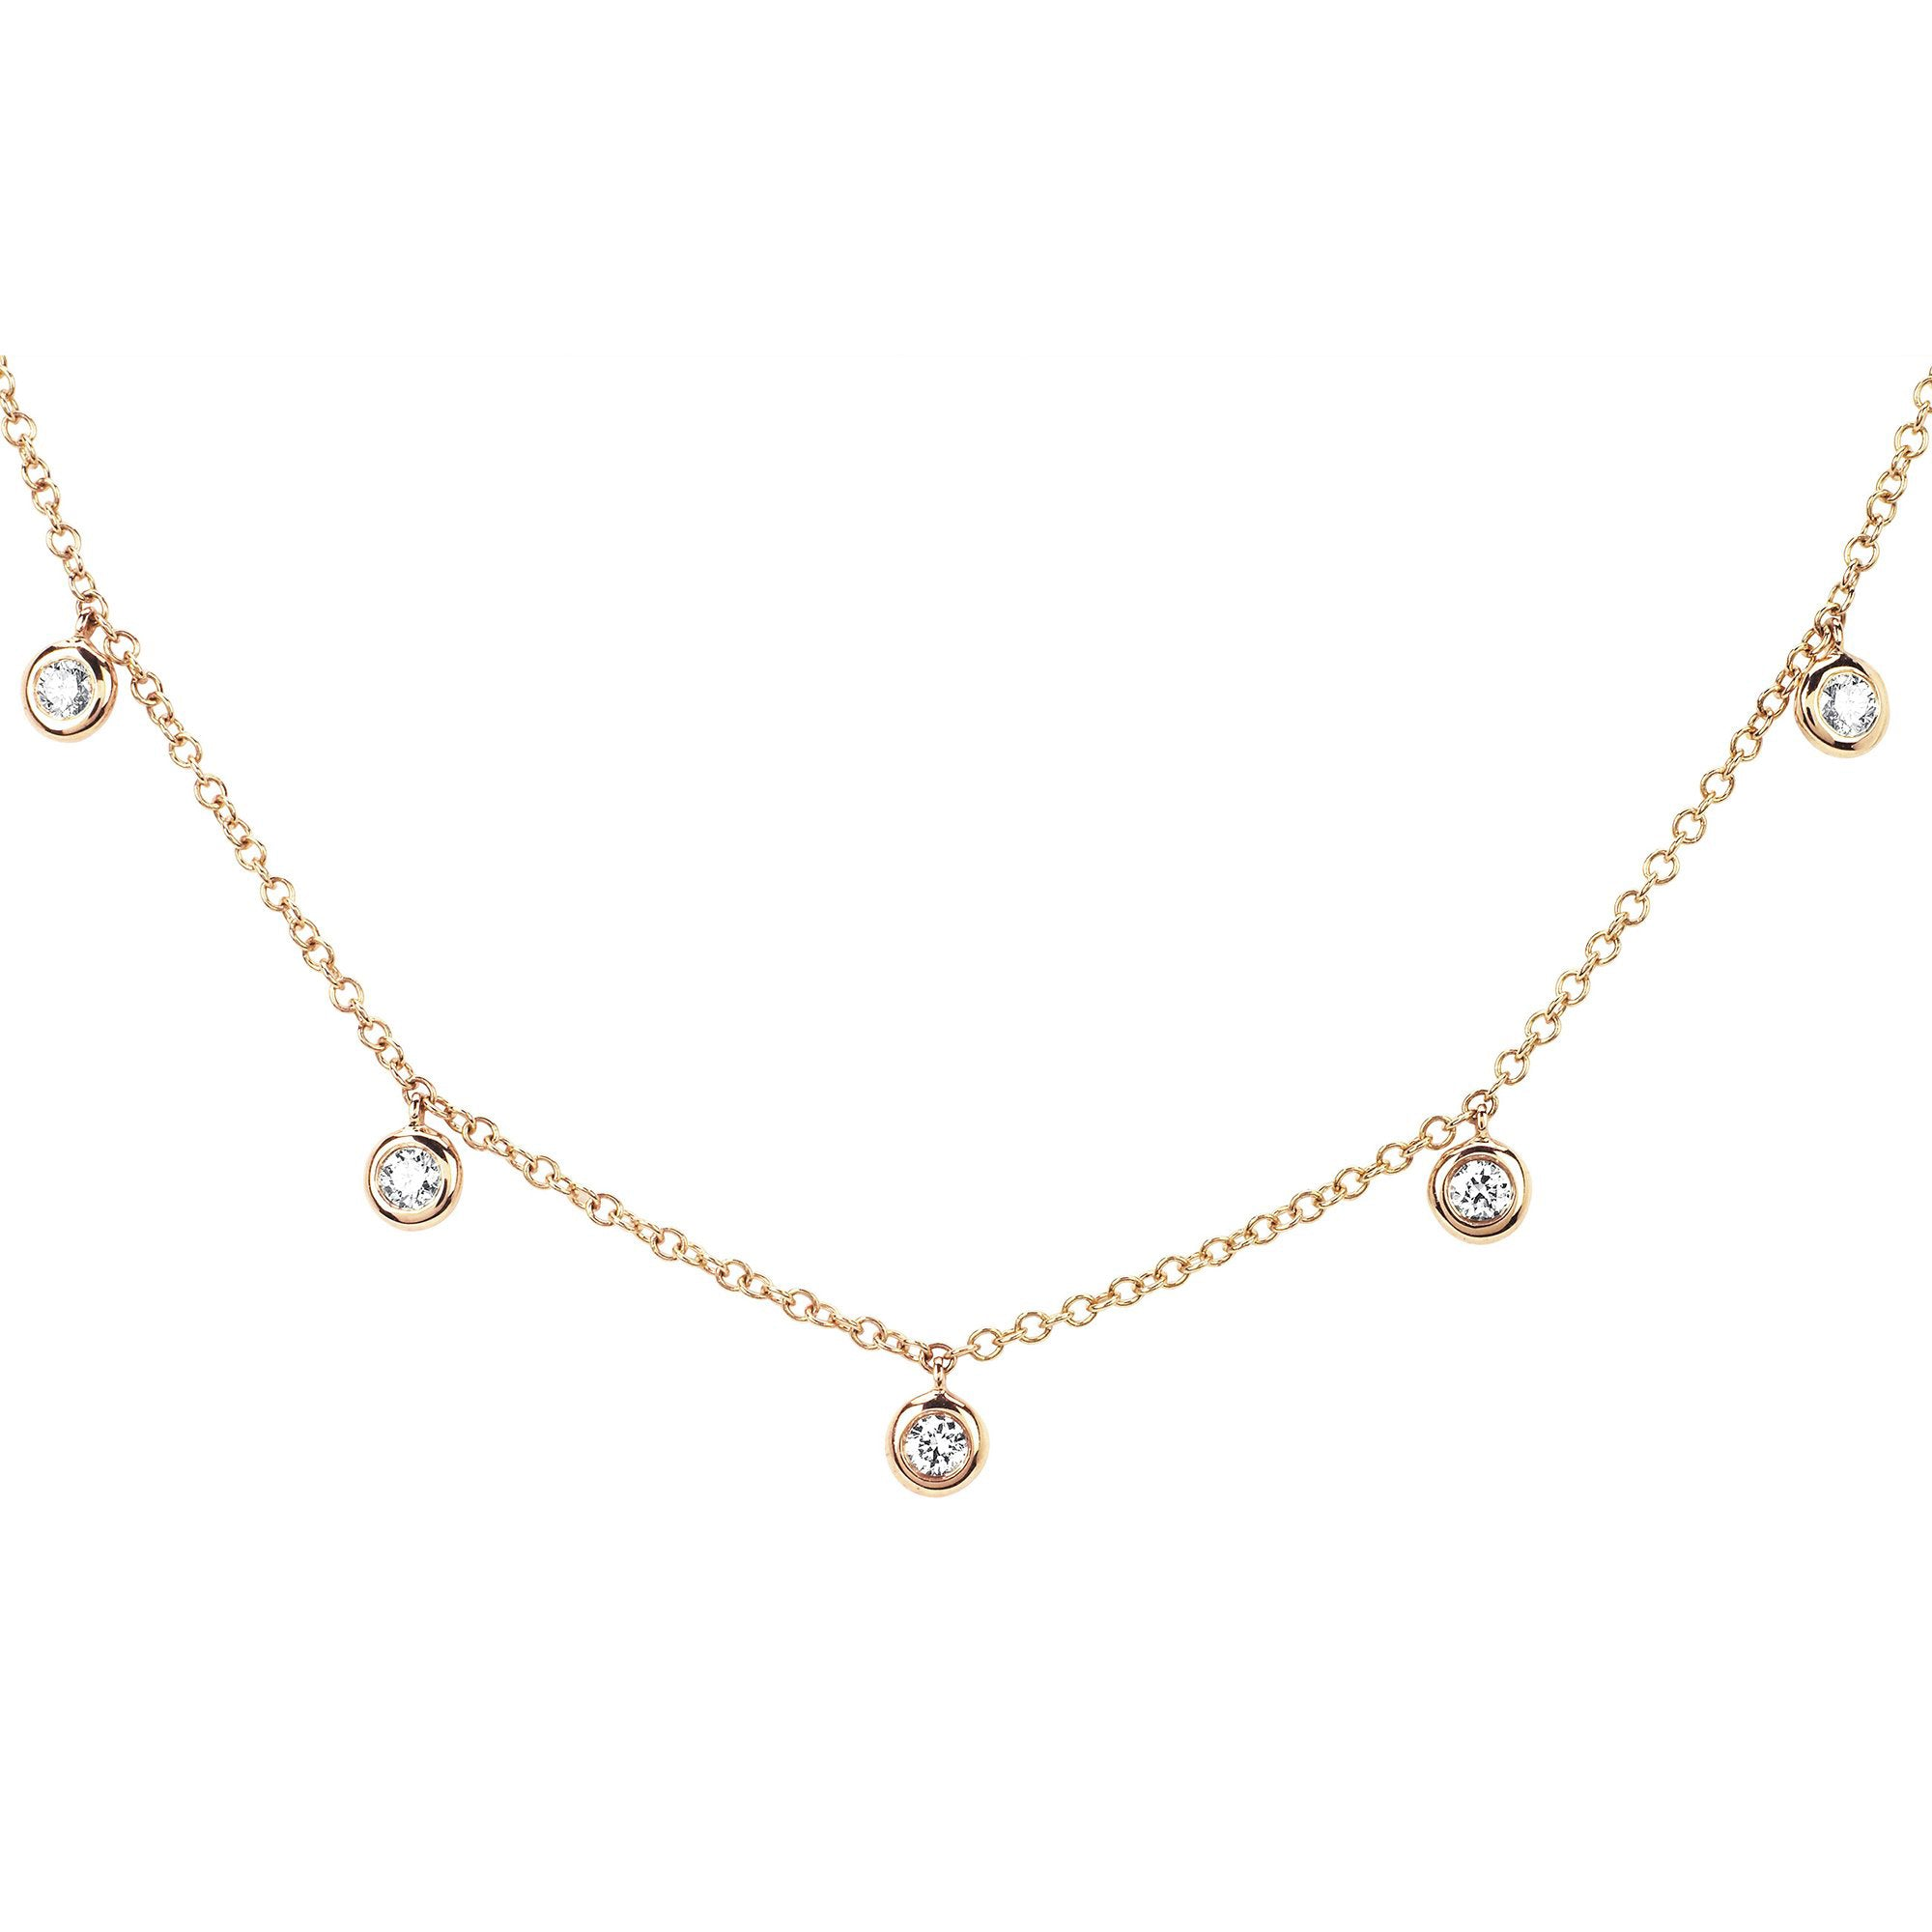 5 Diamond Bezel Choker Necklace by EF Collection for Broken English Jewelry